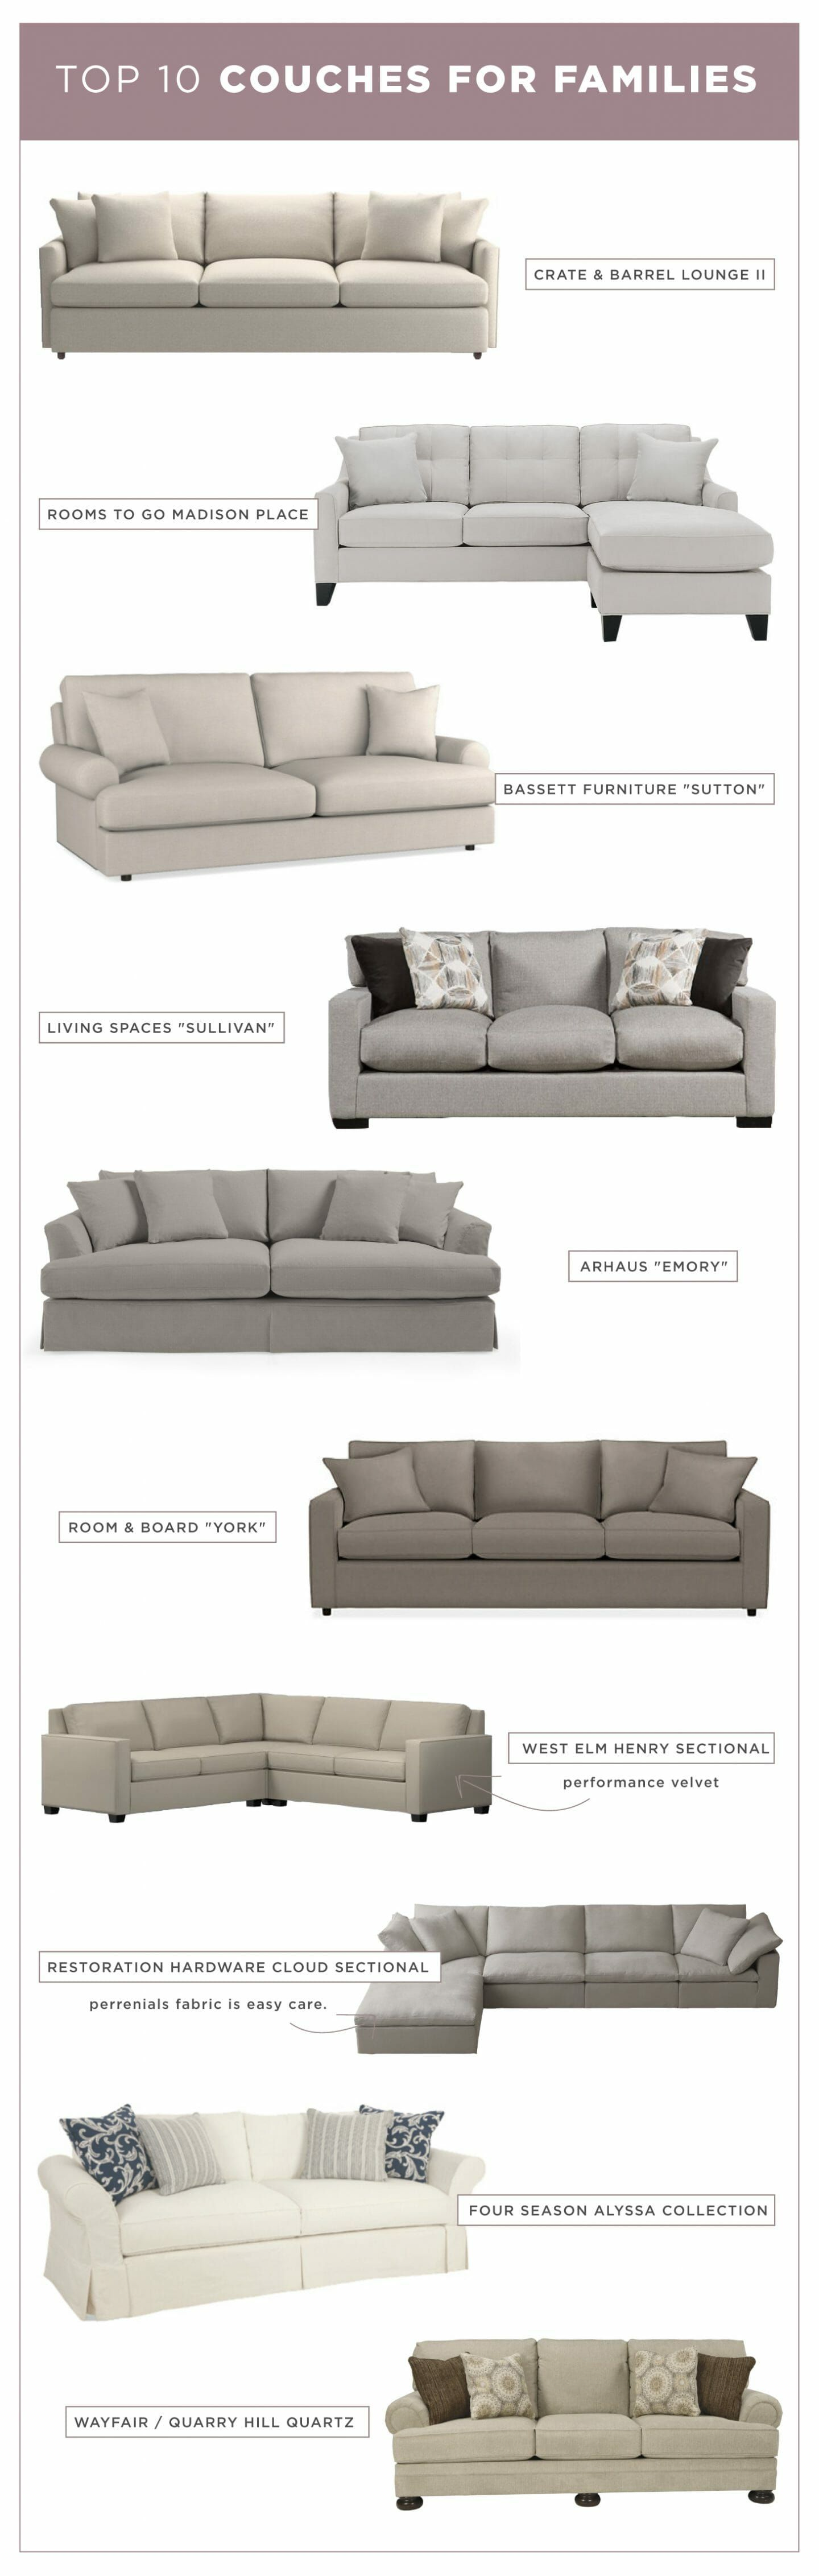 Most Recommended Couches For Families Lynzy Co Couches